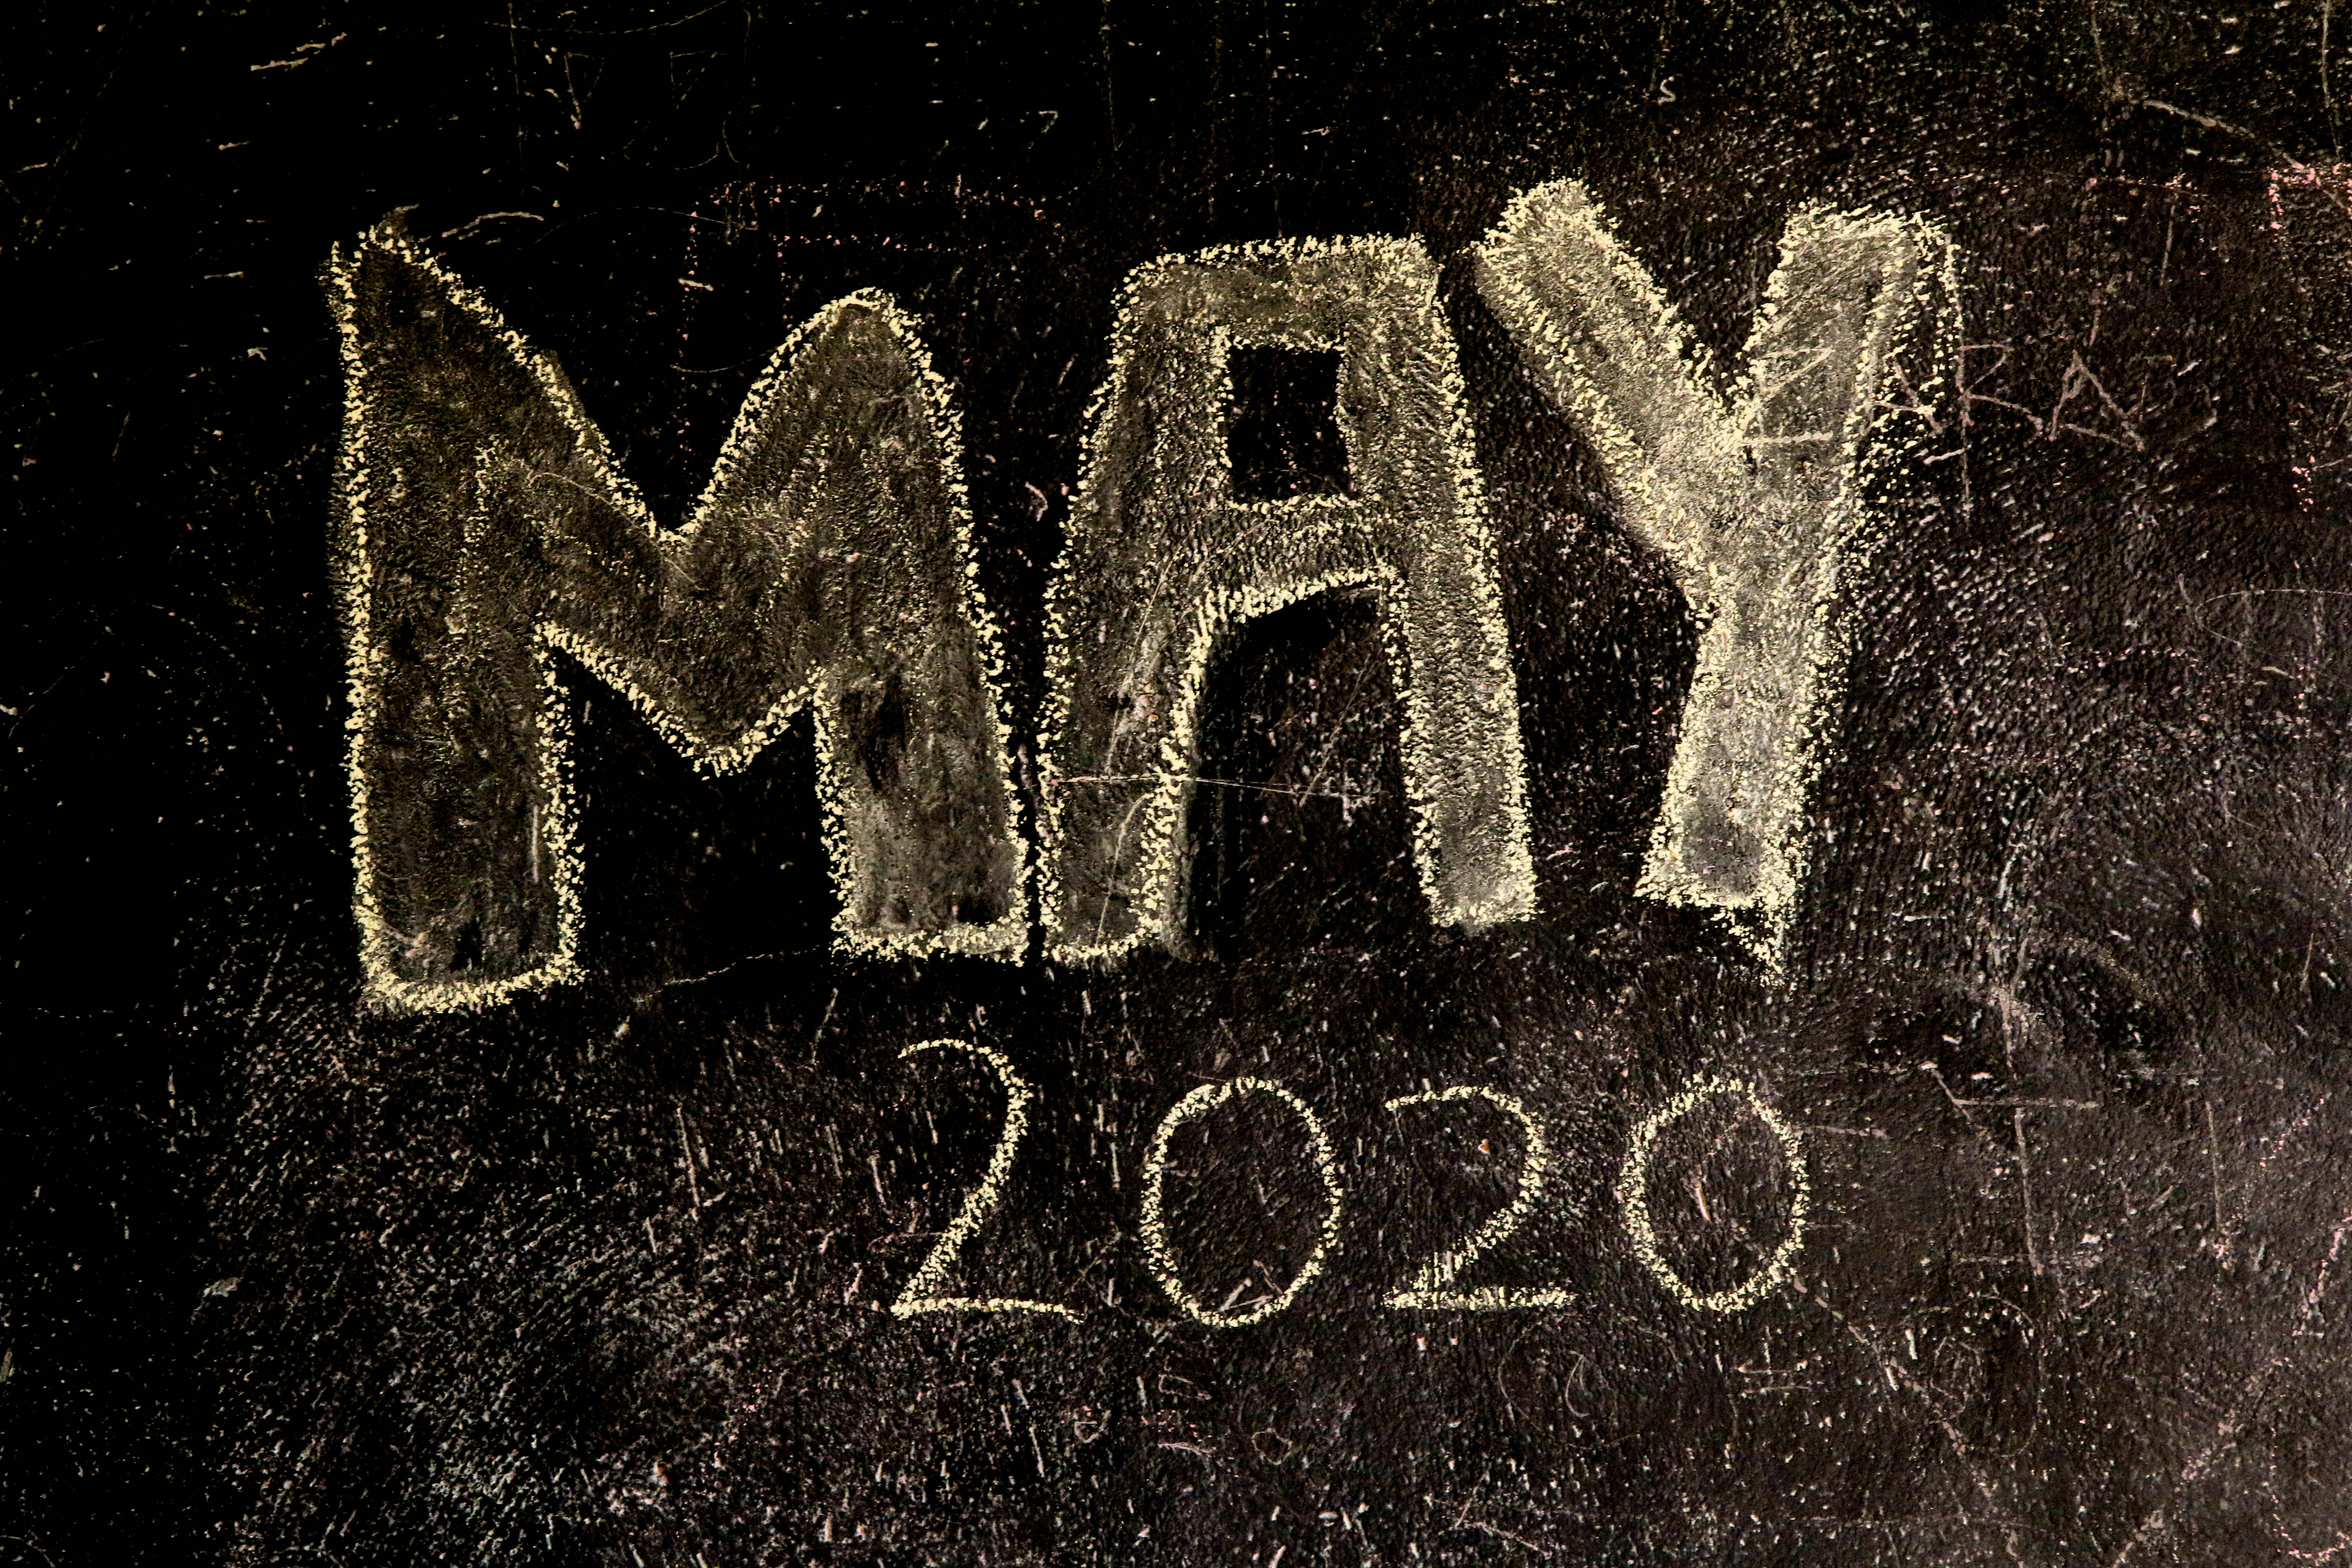 Believers are sharing their faith in the month of May. Will you do the same?